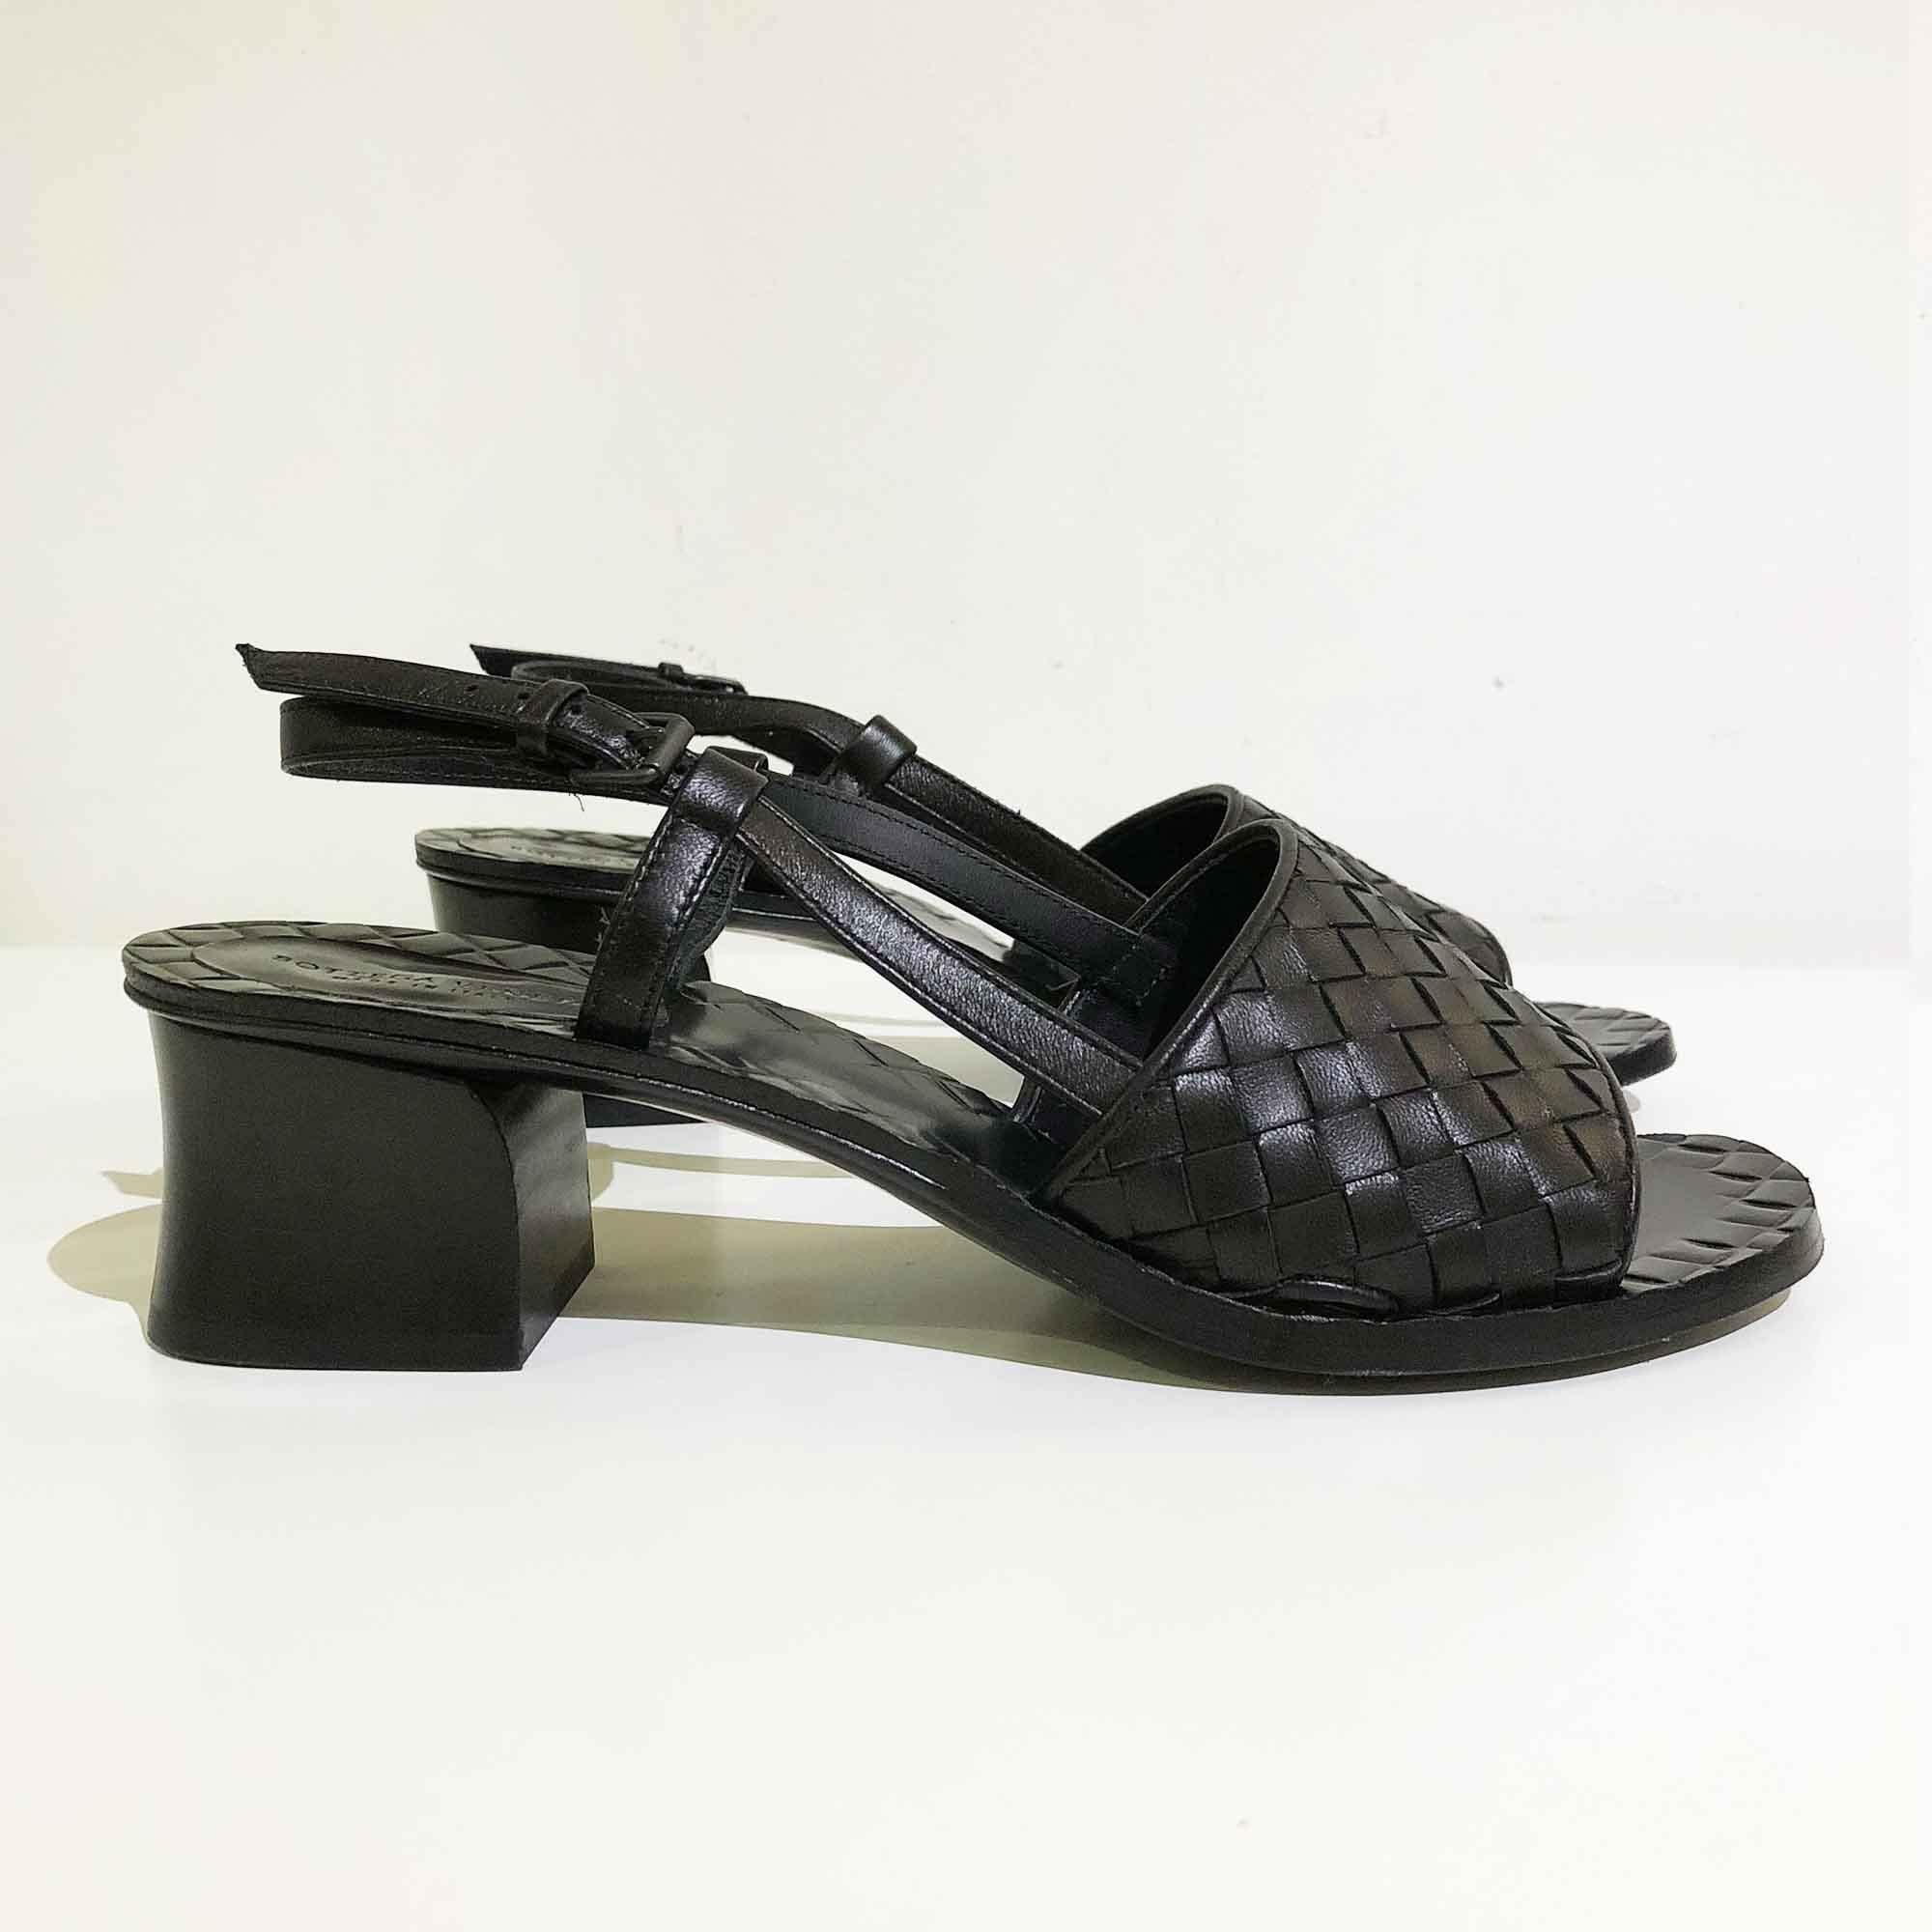 Bottega Veneta Black Intrecciato Leather Sandals